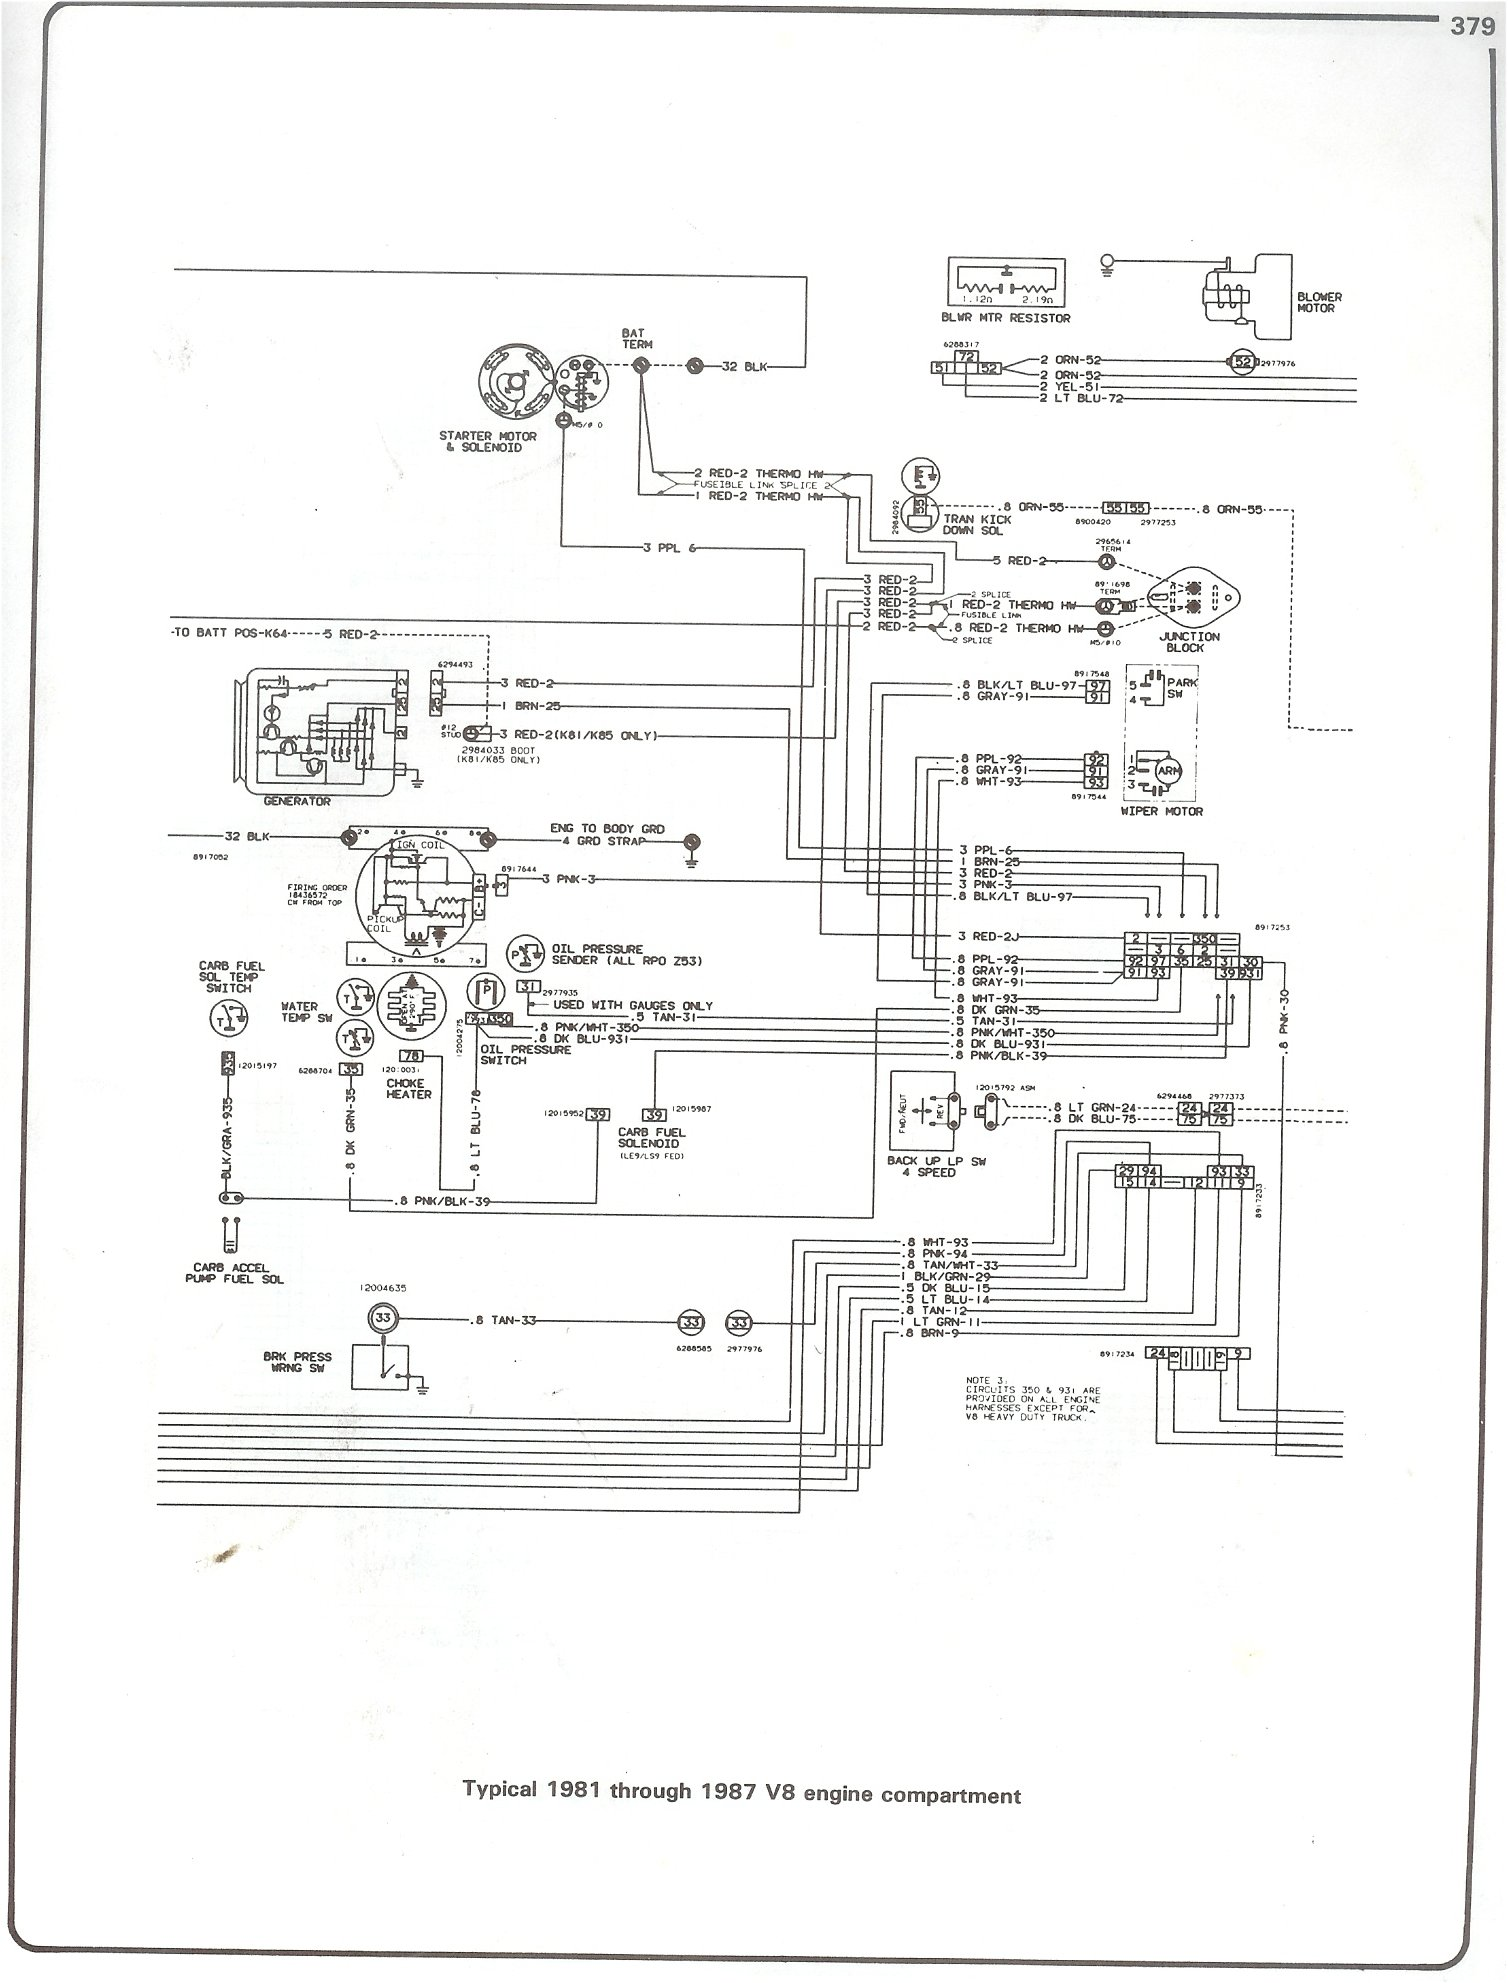 81 87_V8_engine complete 73 87 wiring diagrams 78 chevy truck wiring diagram at readyjetset.co